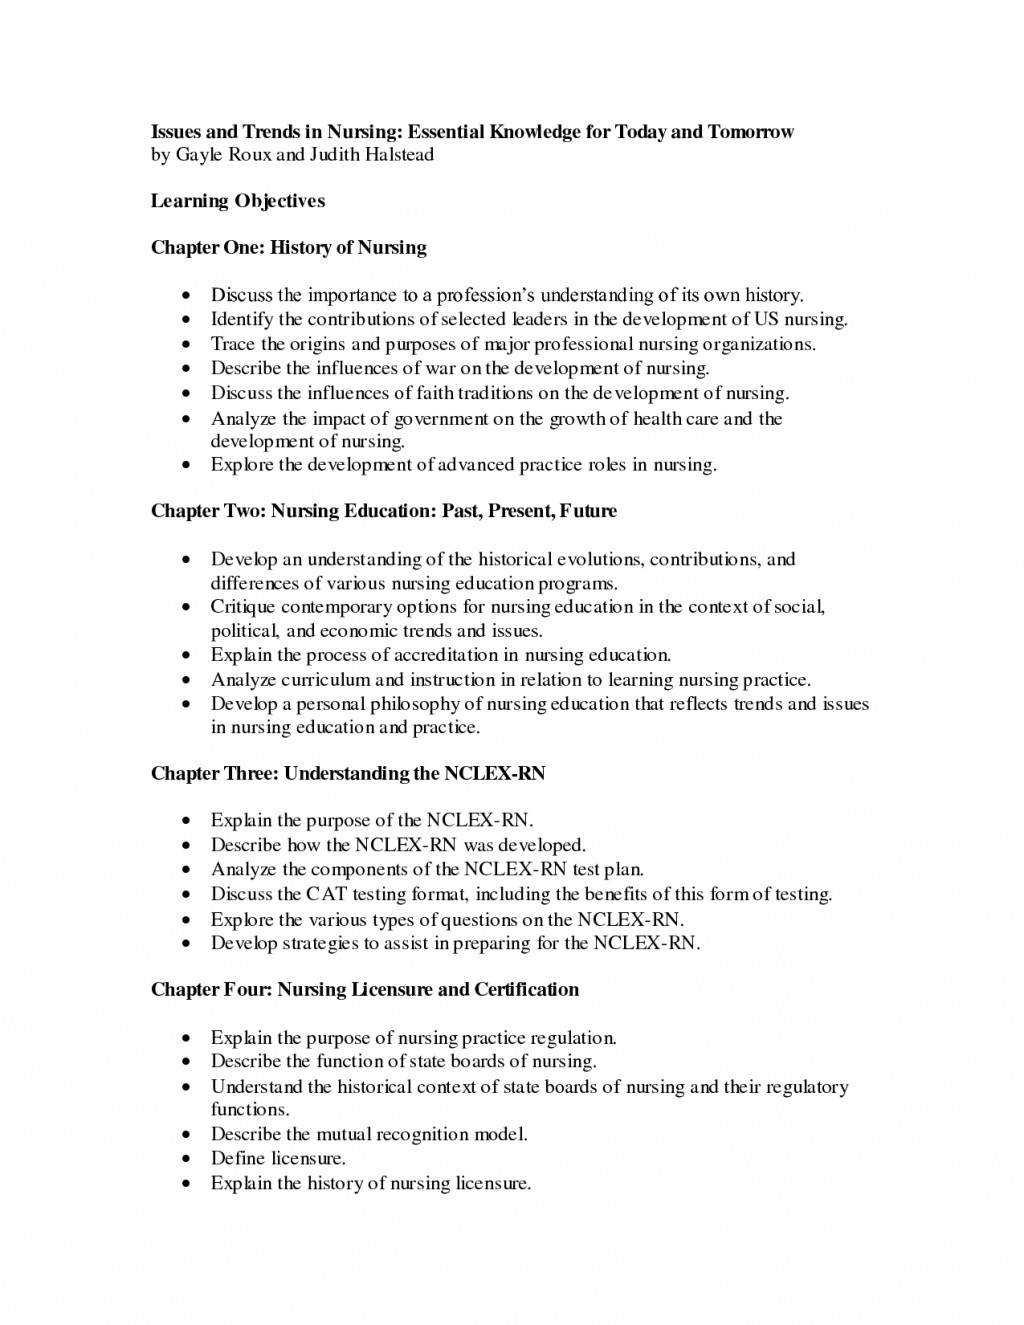 006 Objective Of The Study Research Paper Example Breathtaking Large